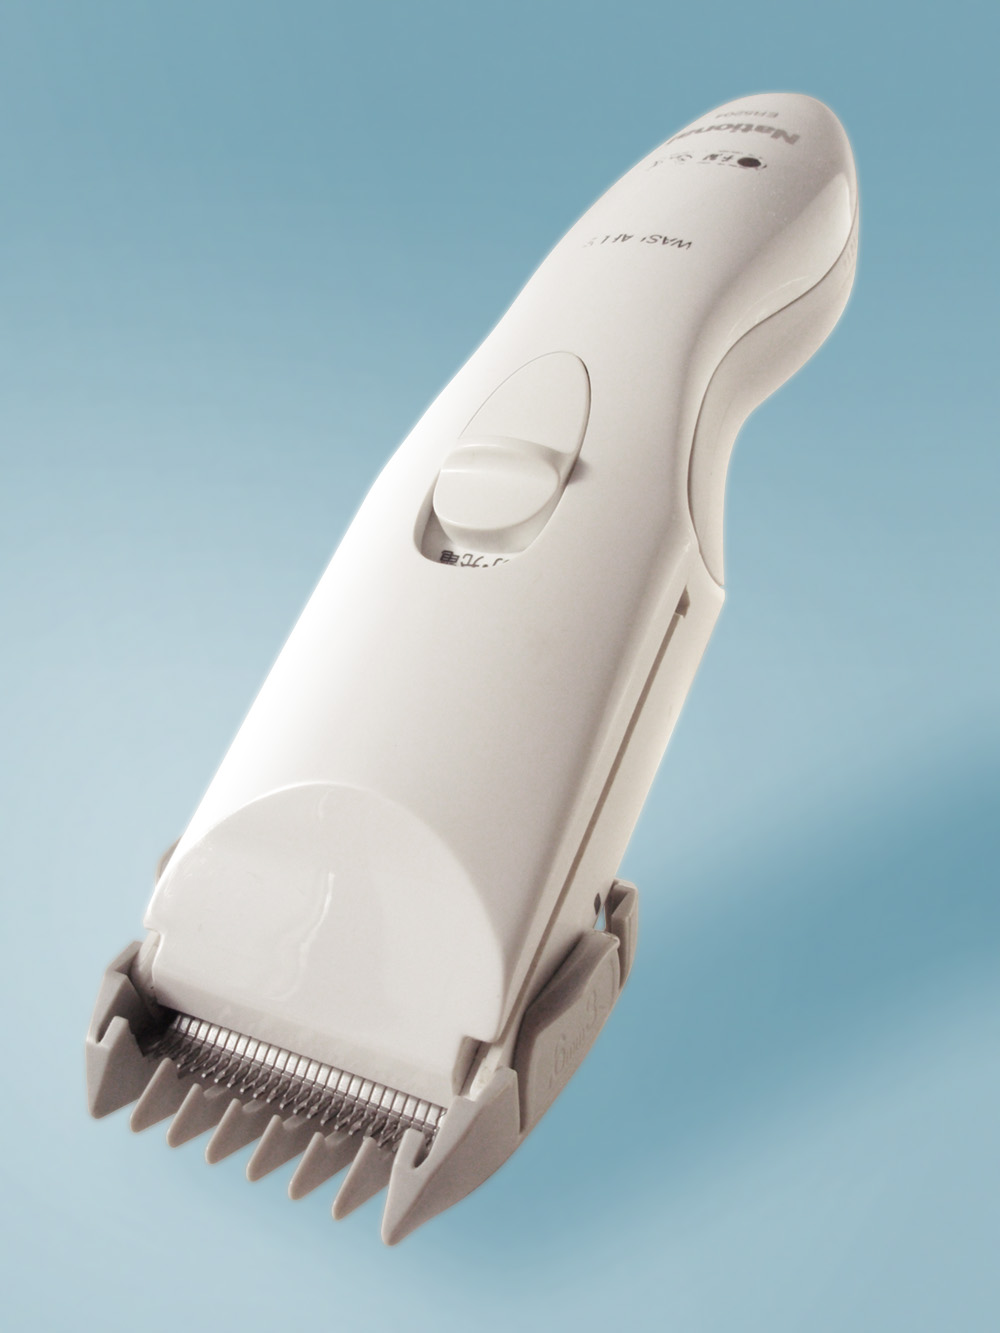 cleaning hair clippers